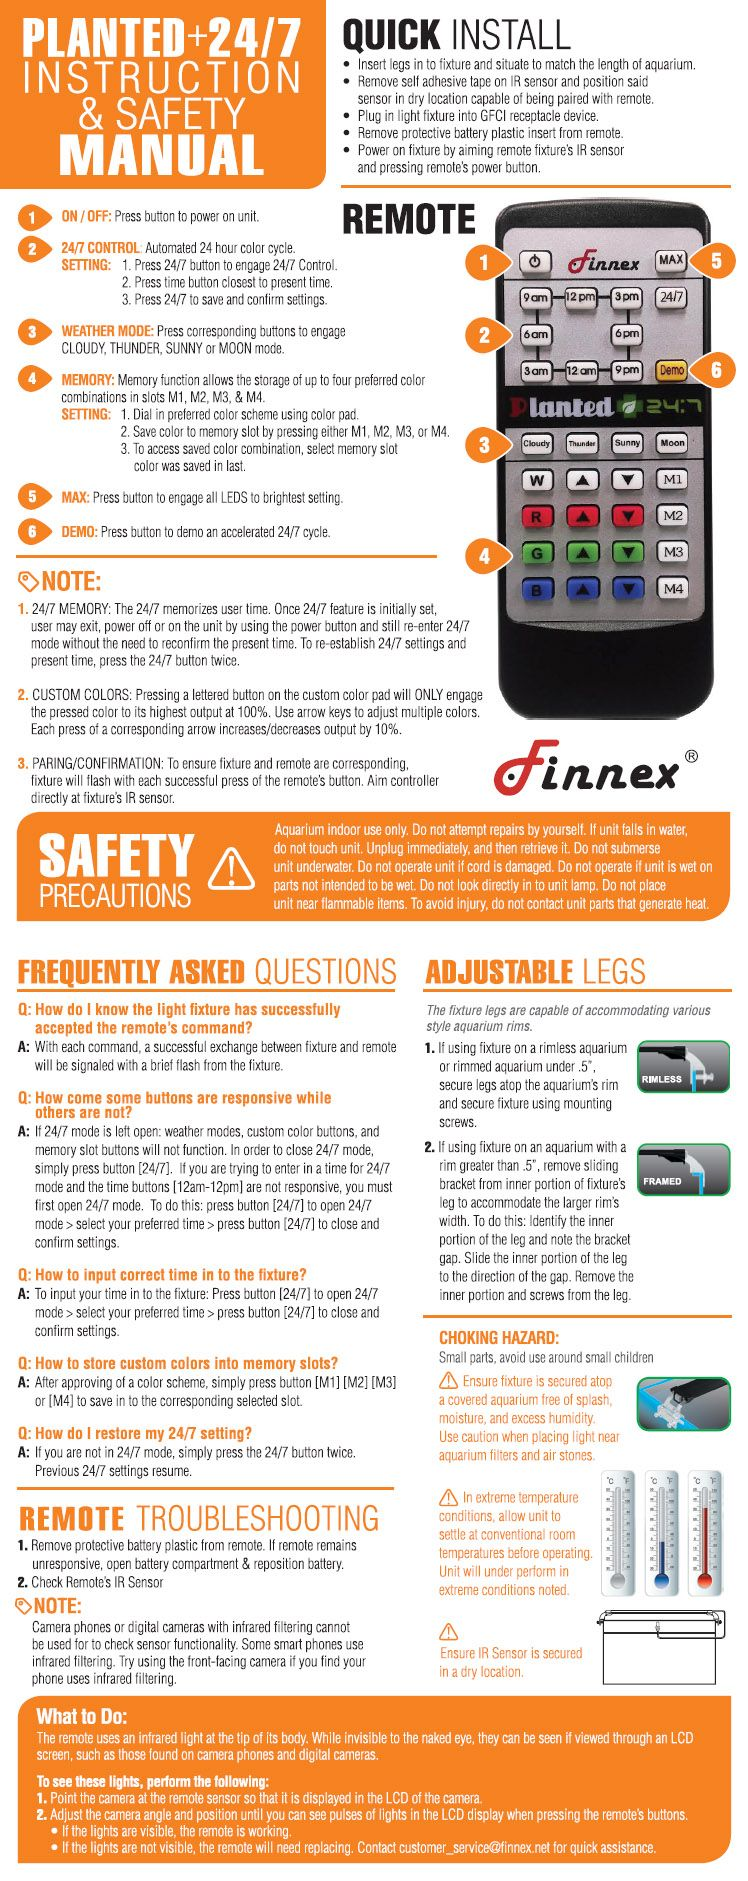 finnex planted 24 7 instruction manual troubleshooting the